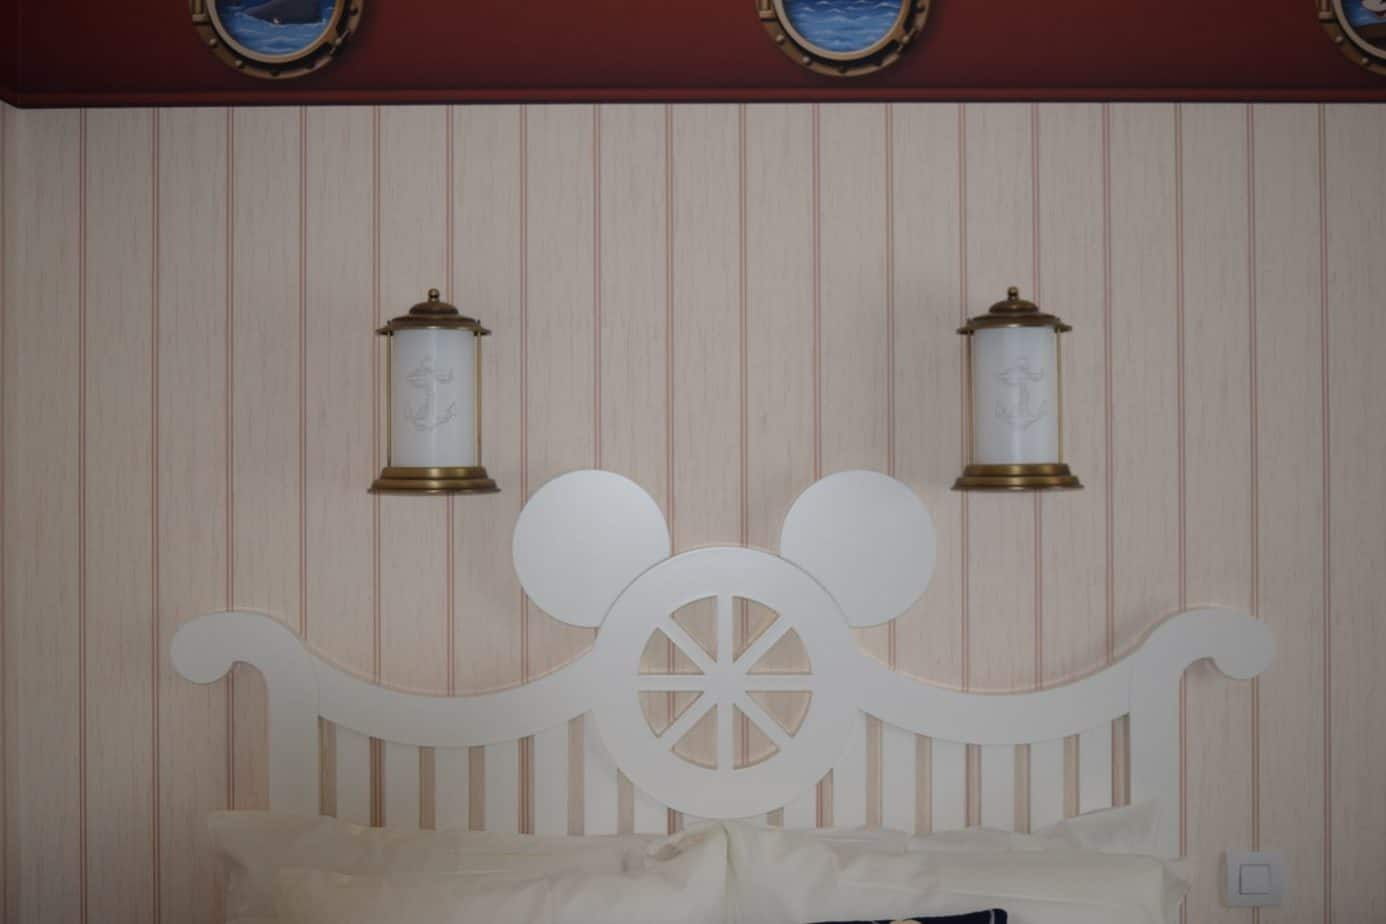 Some mickey interior (bed frames with a mickey face on it) a Newport bay hotel